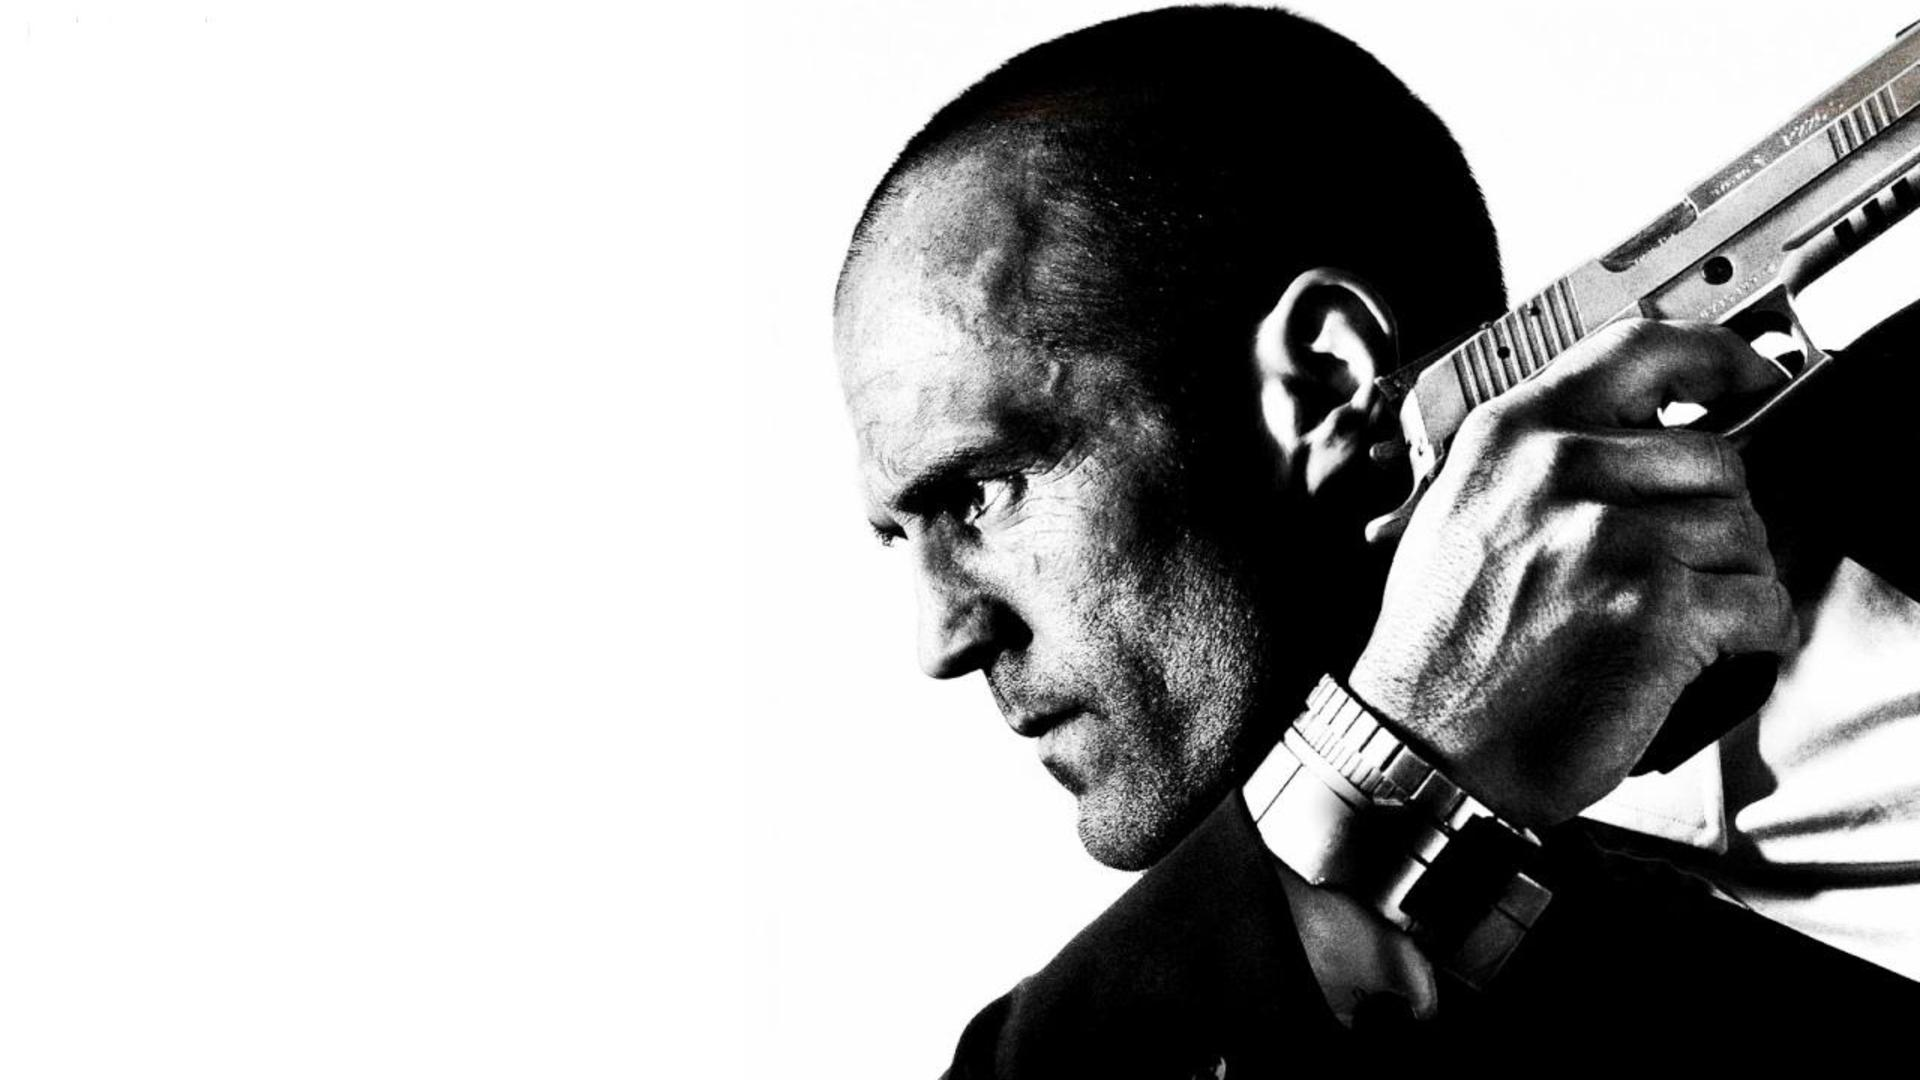 download Jason Statham Wallpapers High Quality Download 1920x1080